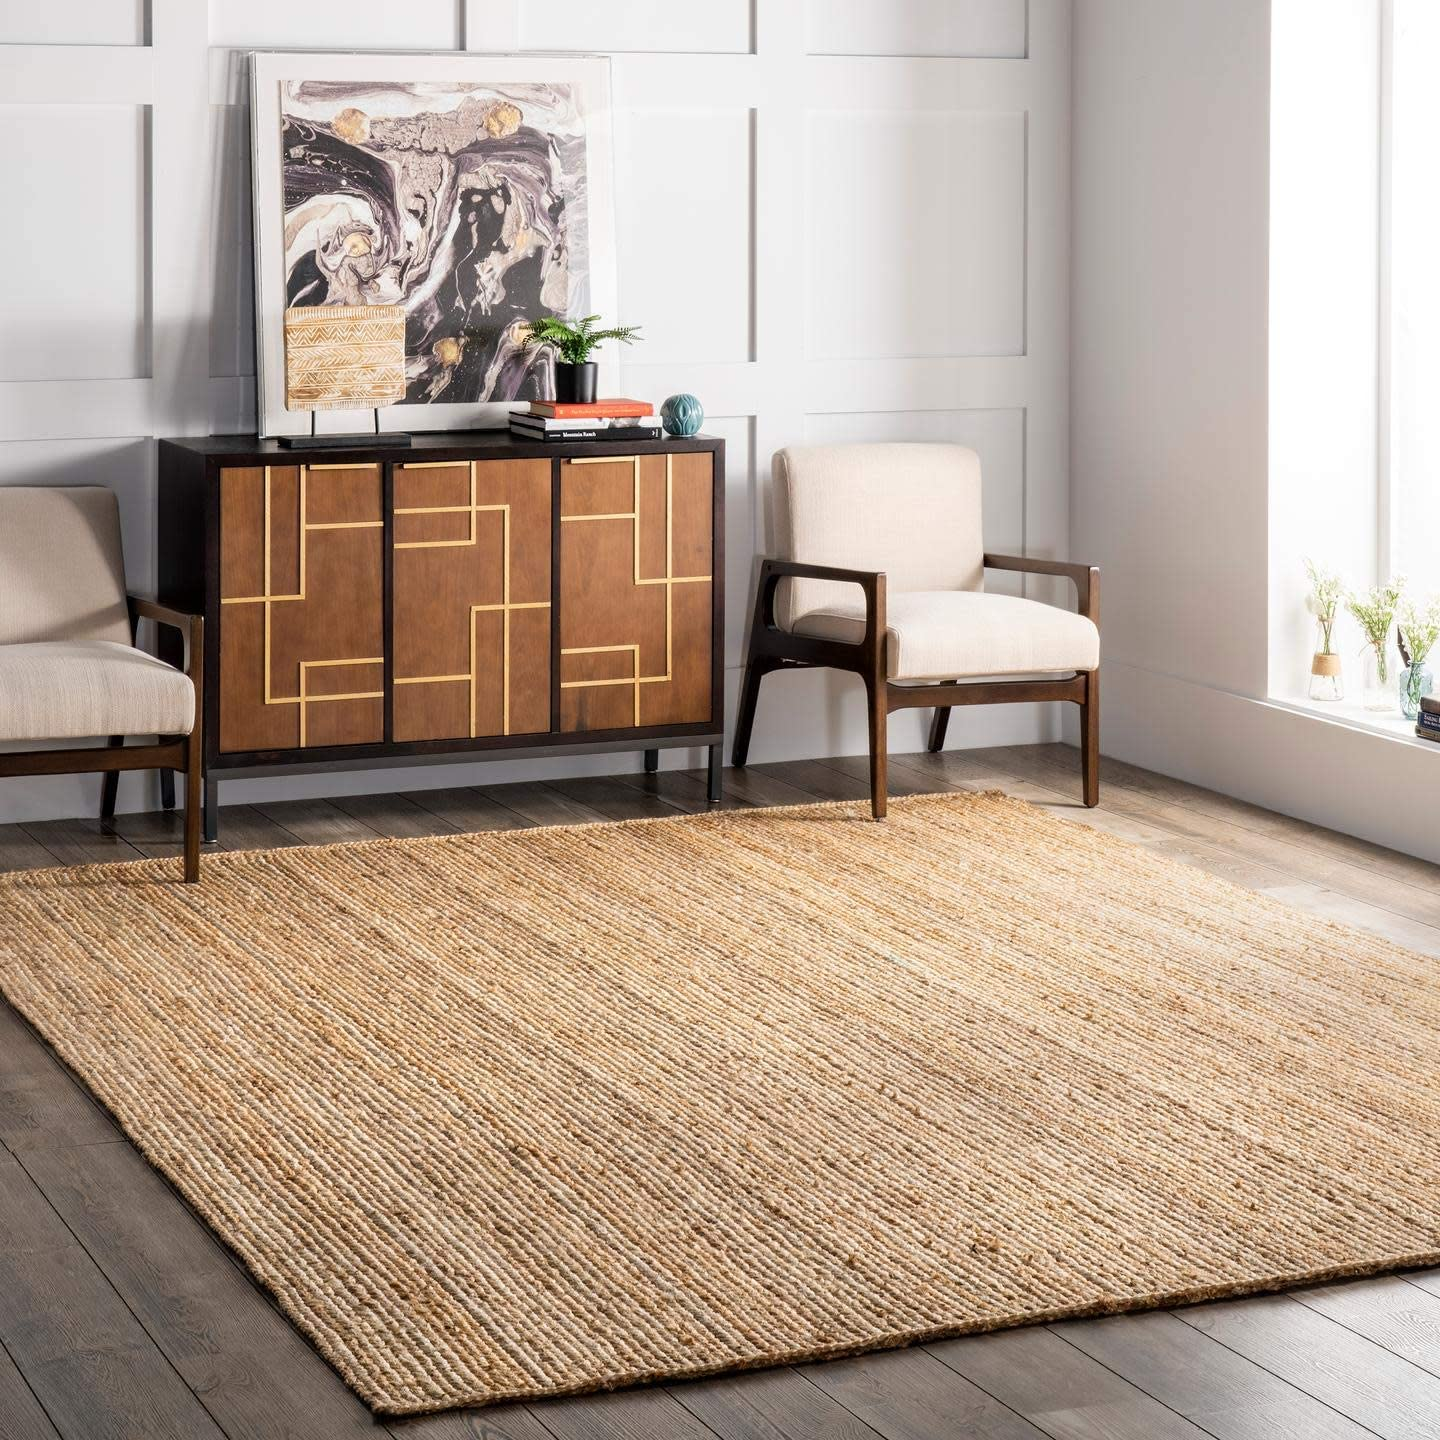 nuLOOM Rigo Hand Woven Jute Area Rug, 6' x 9', Natural: Furniture & Decor